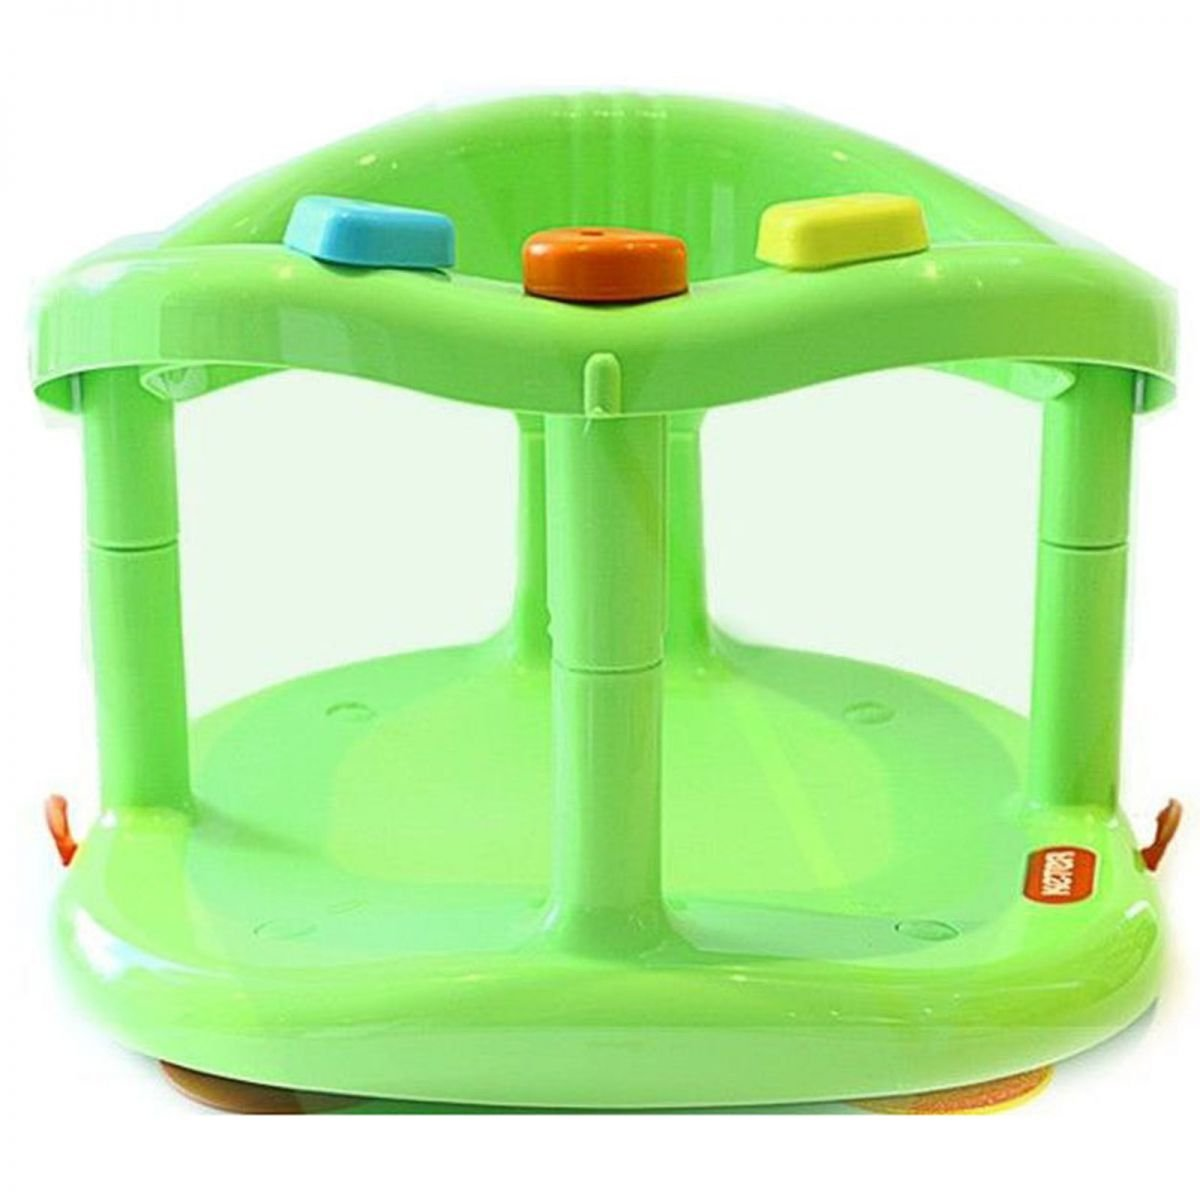 Keter Baby Bath Tub Ring Seat Anti Slip Chair Bathtub Tub - Green ...